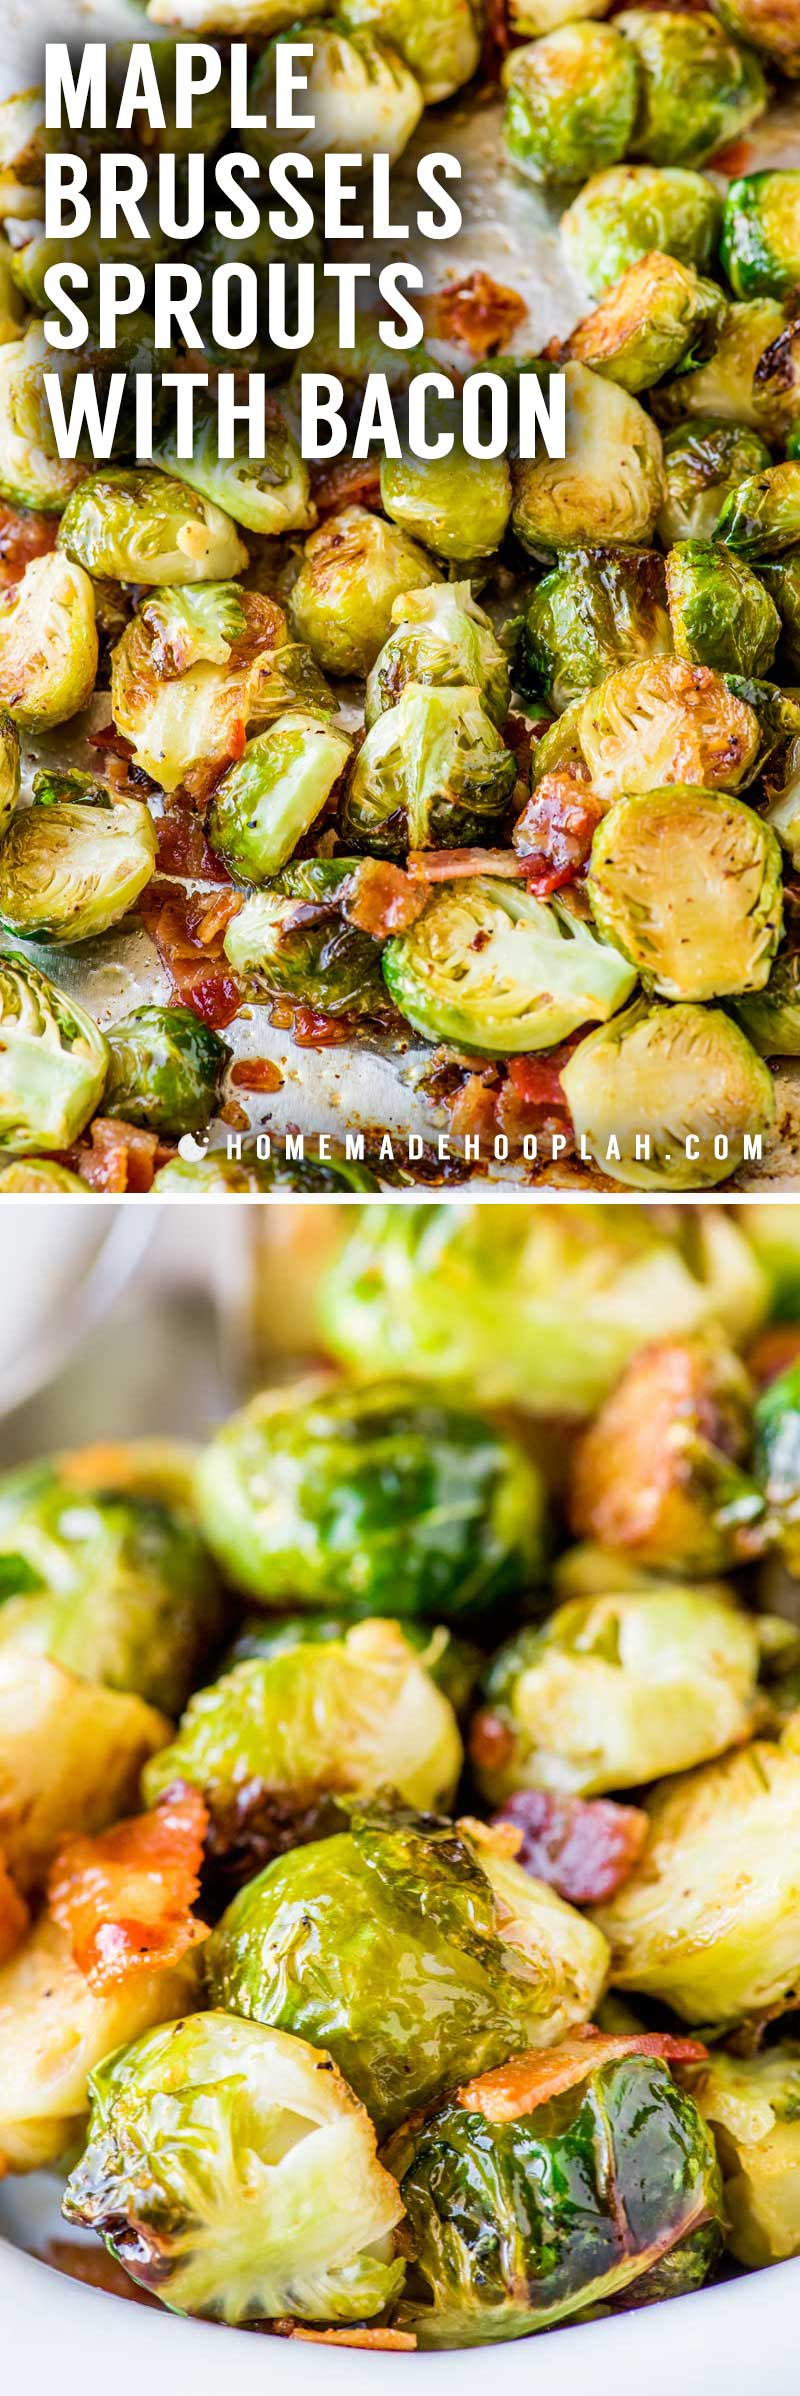 Maple Bacon Brussels Sprouts! Oven-roasted Brussels sprouts flavored with crispy bacon and sweet maple syrup. It's an easy side dish to whip up for any dinner or holiday! | HomemadeHooplah.com